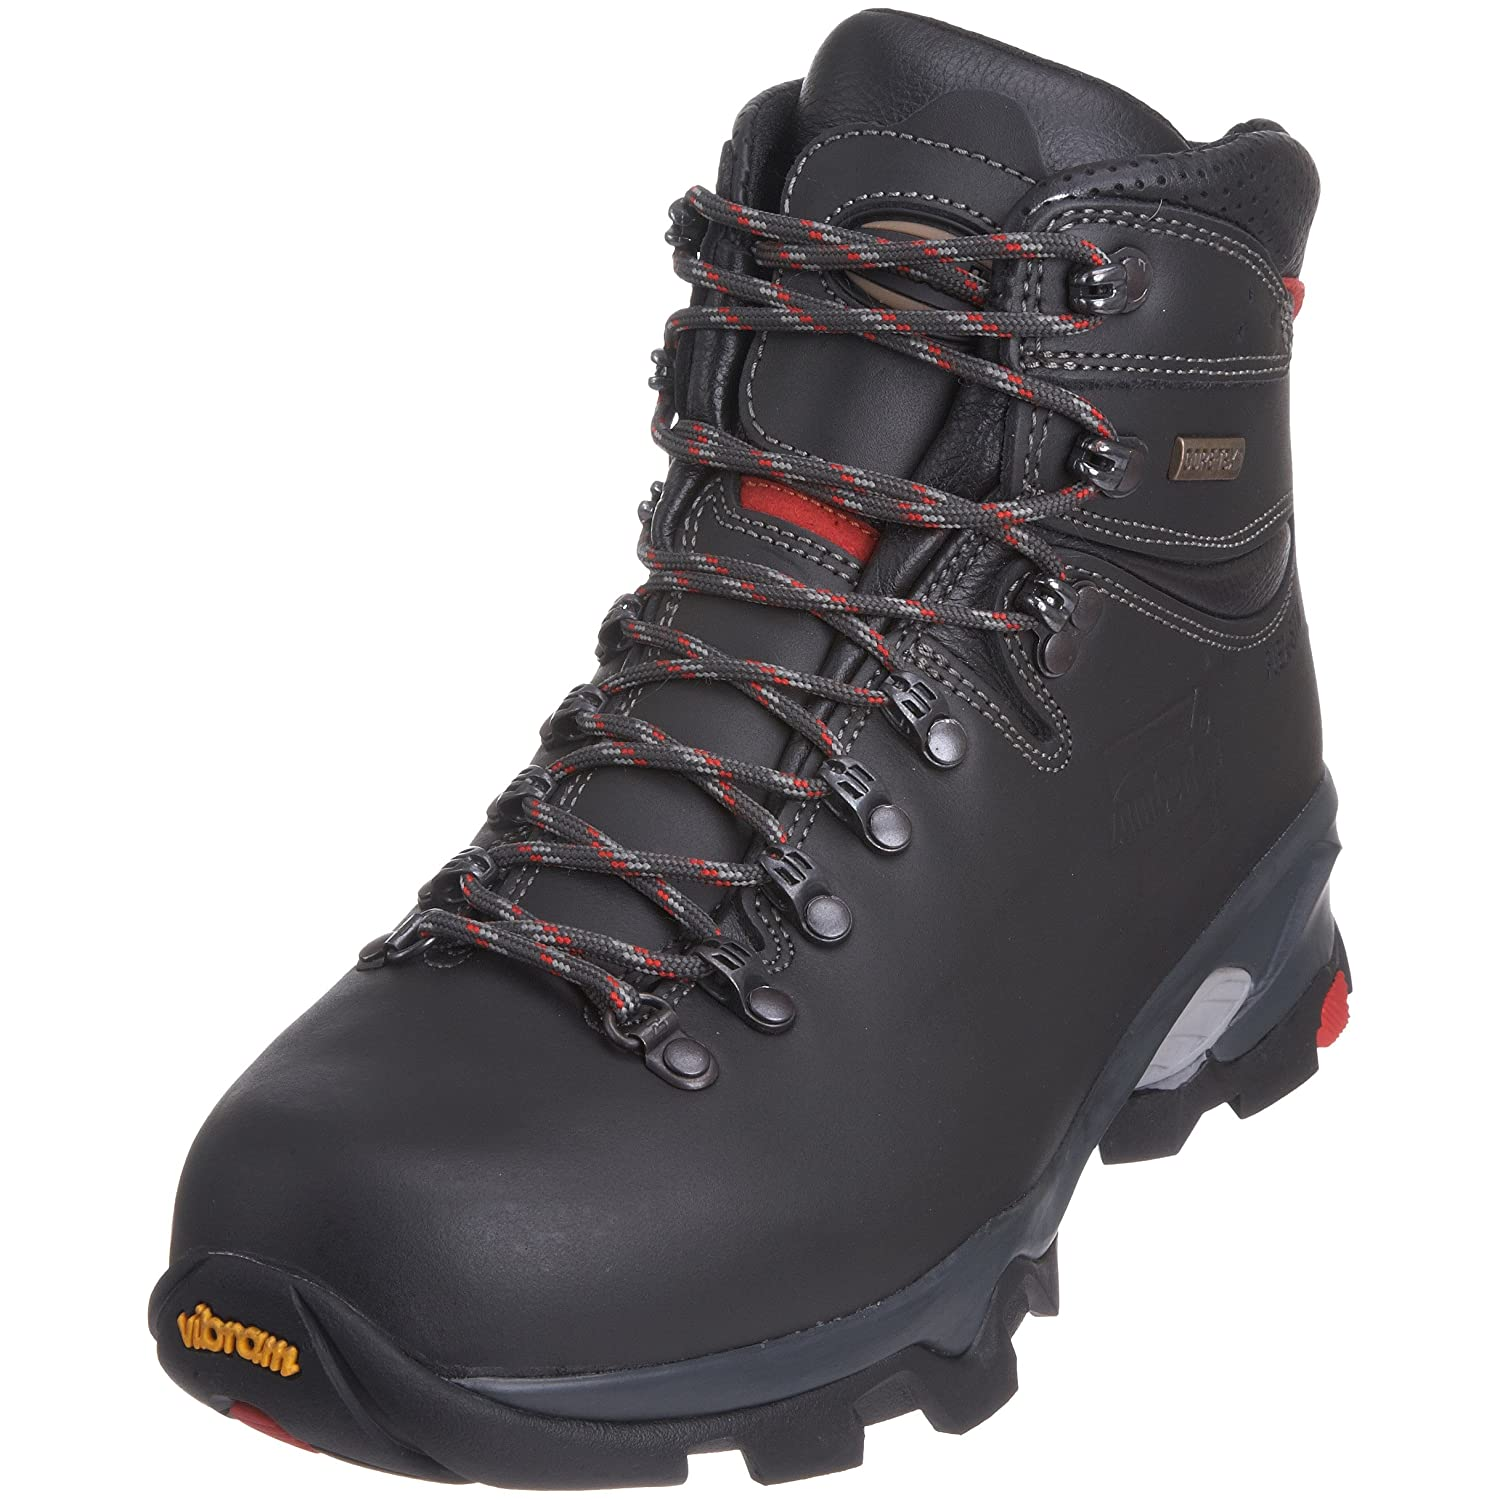 Zamberlan Men's 996 Vioz Gore-tex® Walking Boot